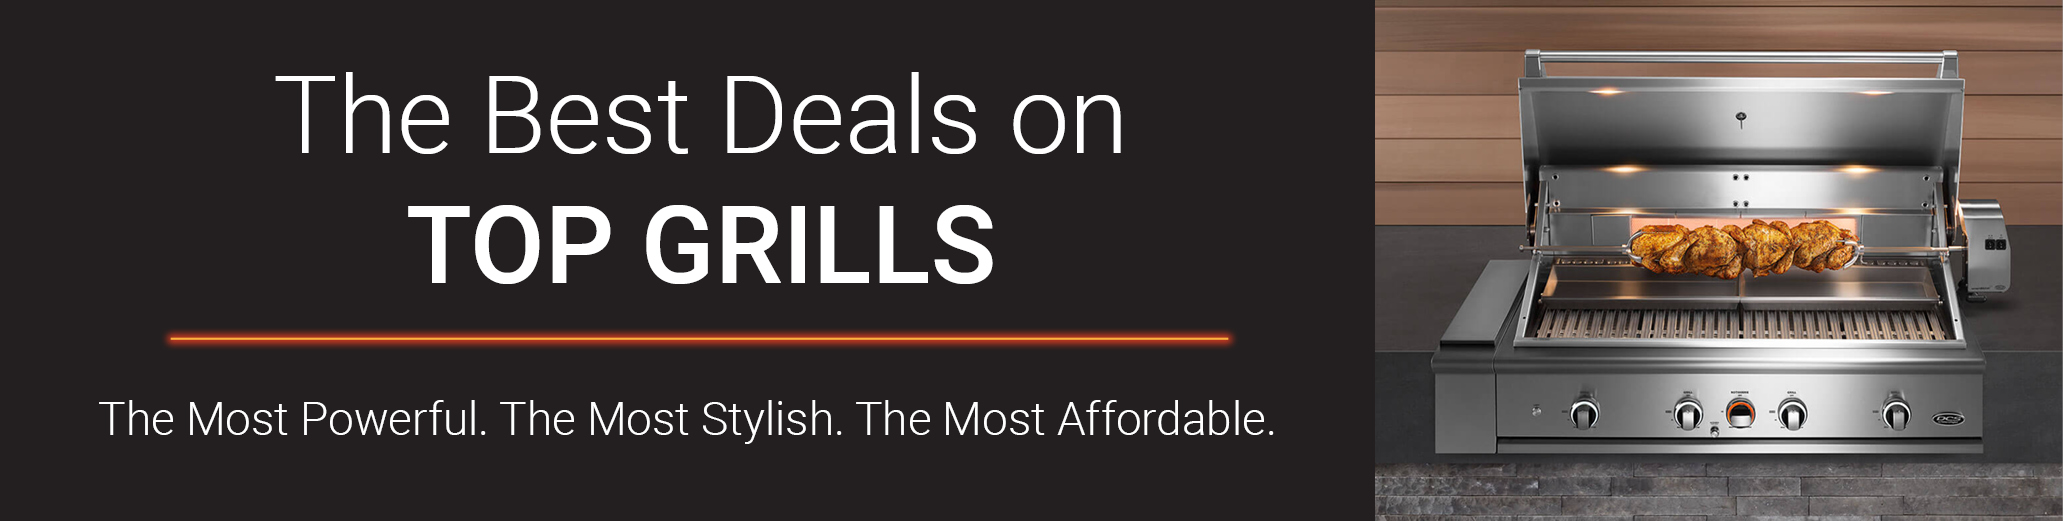 Shop Now for The Best Grills